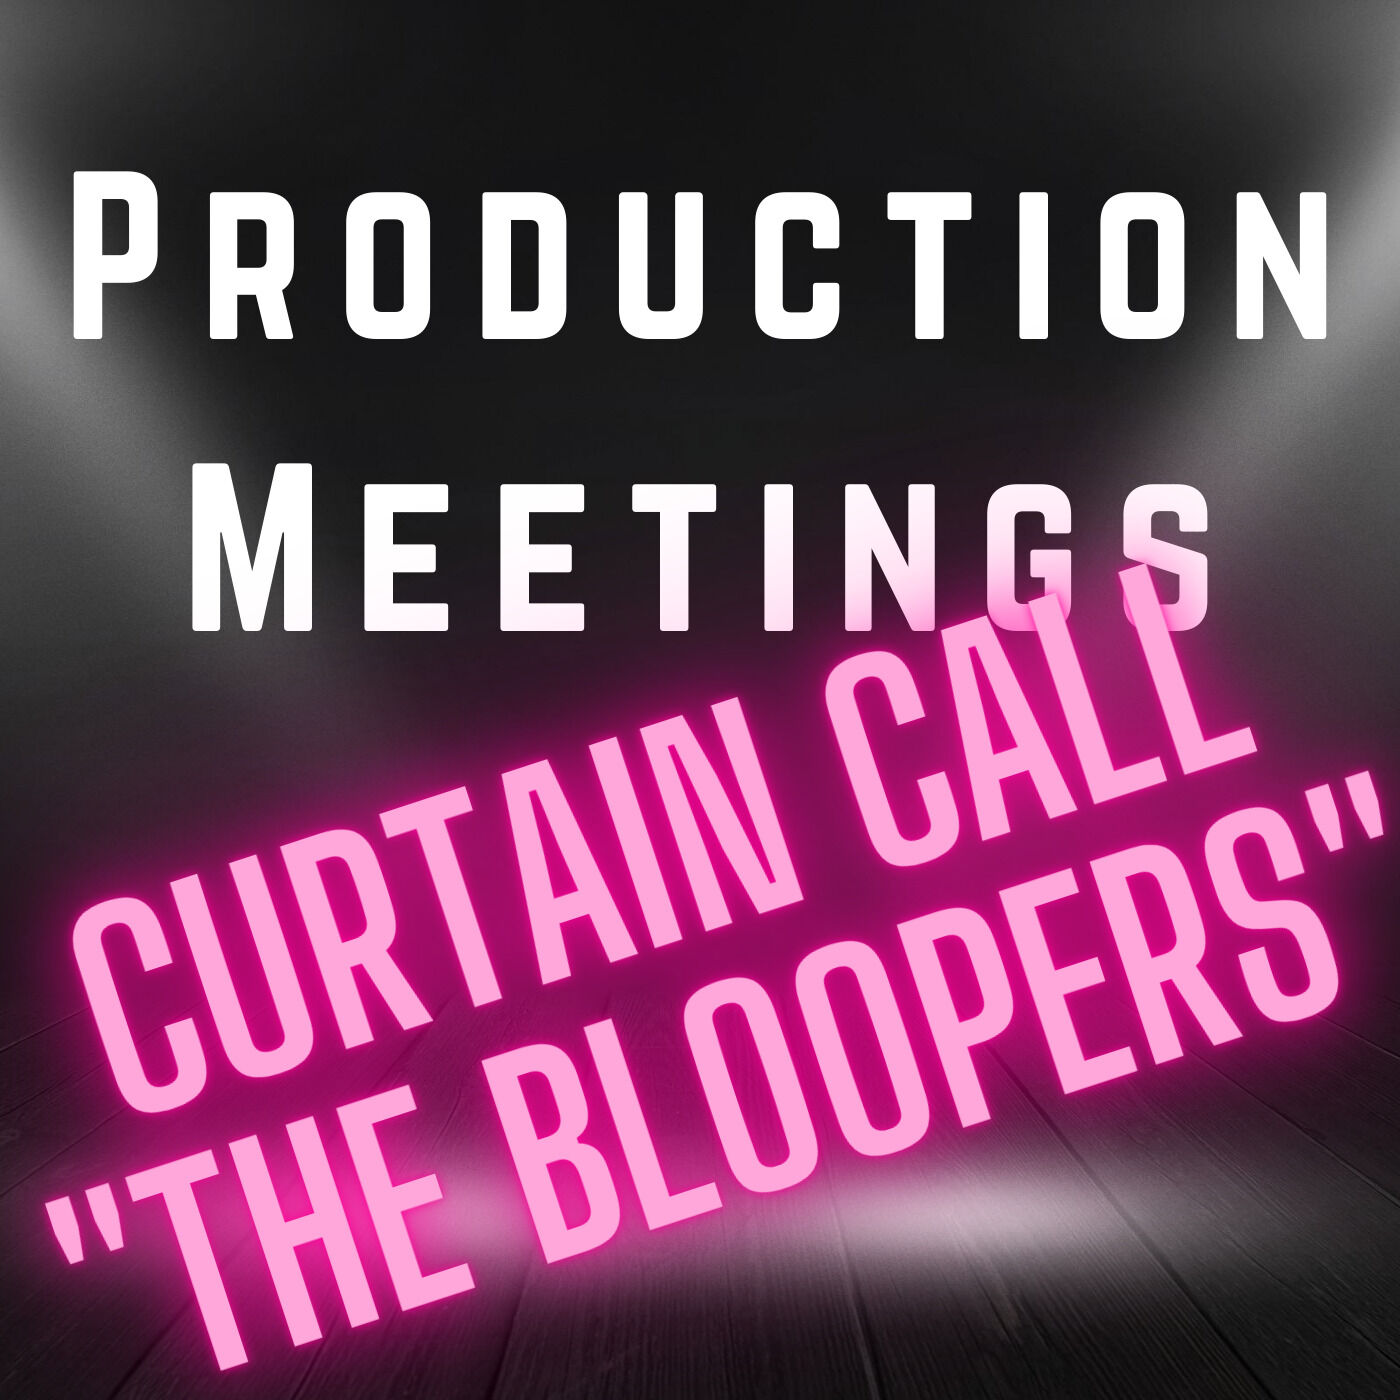 014 - Curtain Call - The Bloopers